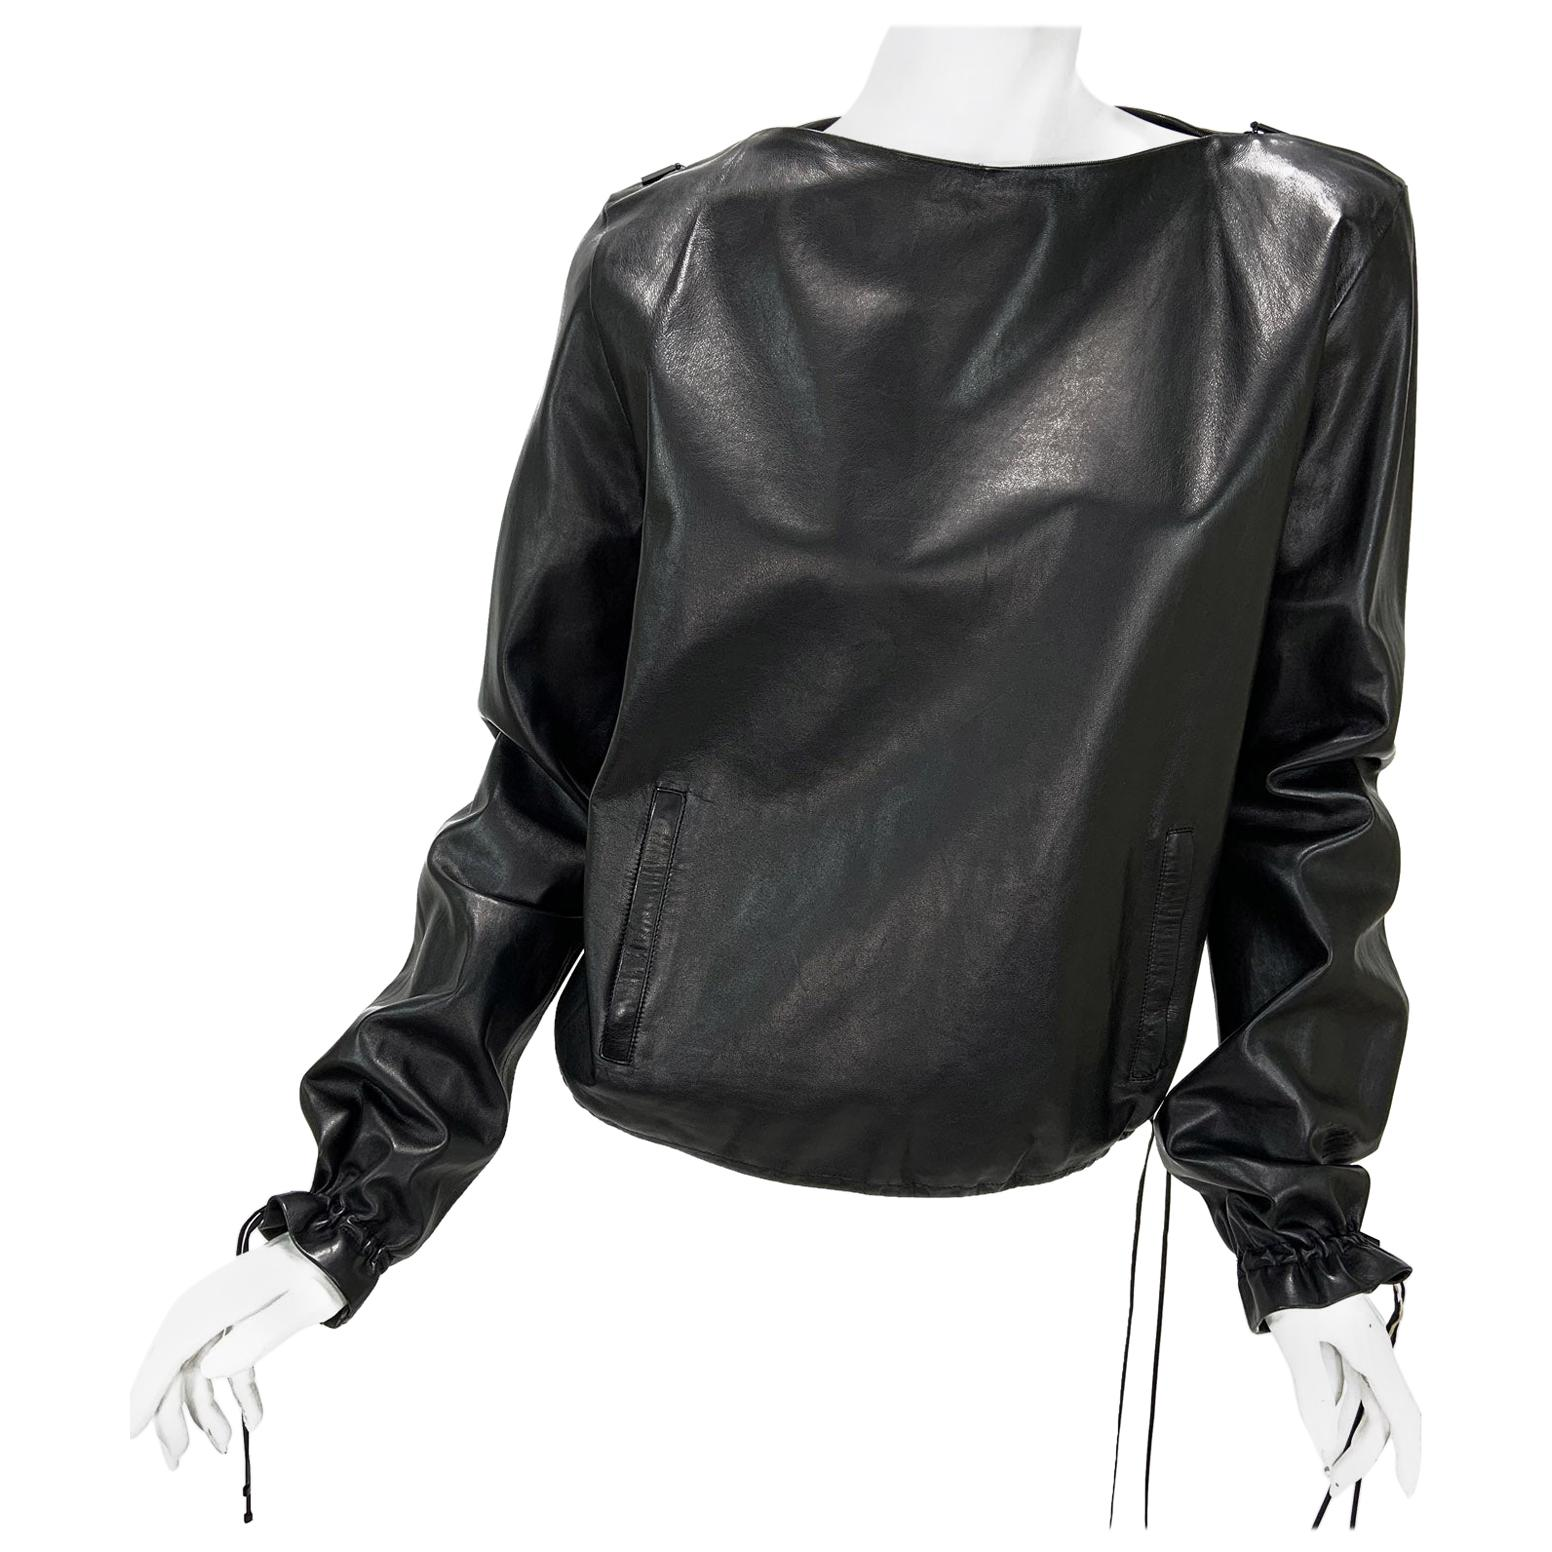 New Tom Ford for Gucci 2001 Collection Black Leather Blouson Top It. 44 - 8/10